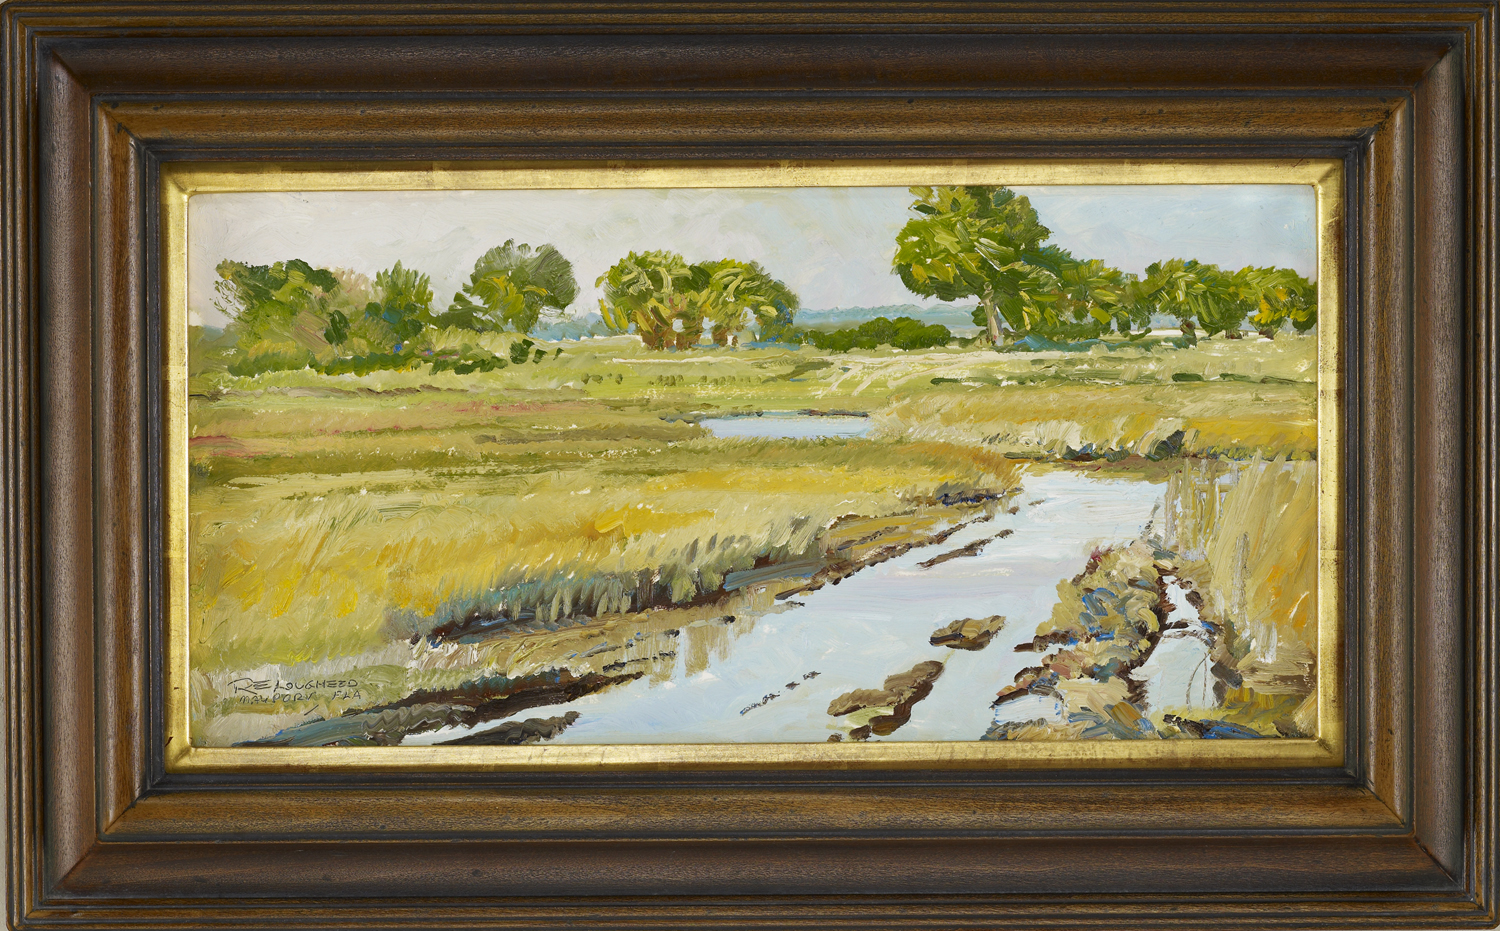 Mayport, Florida by  Robert Lougheed - Masterpiece Online